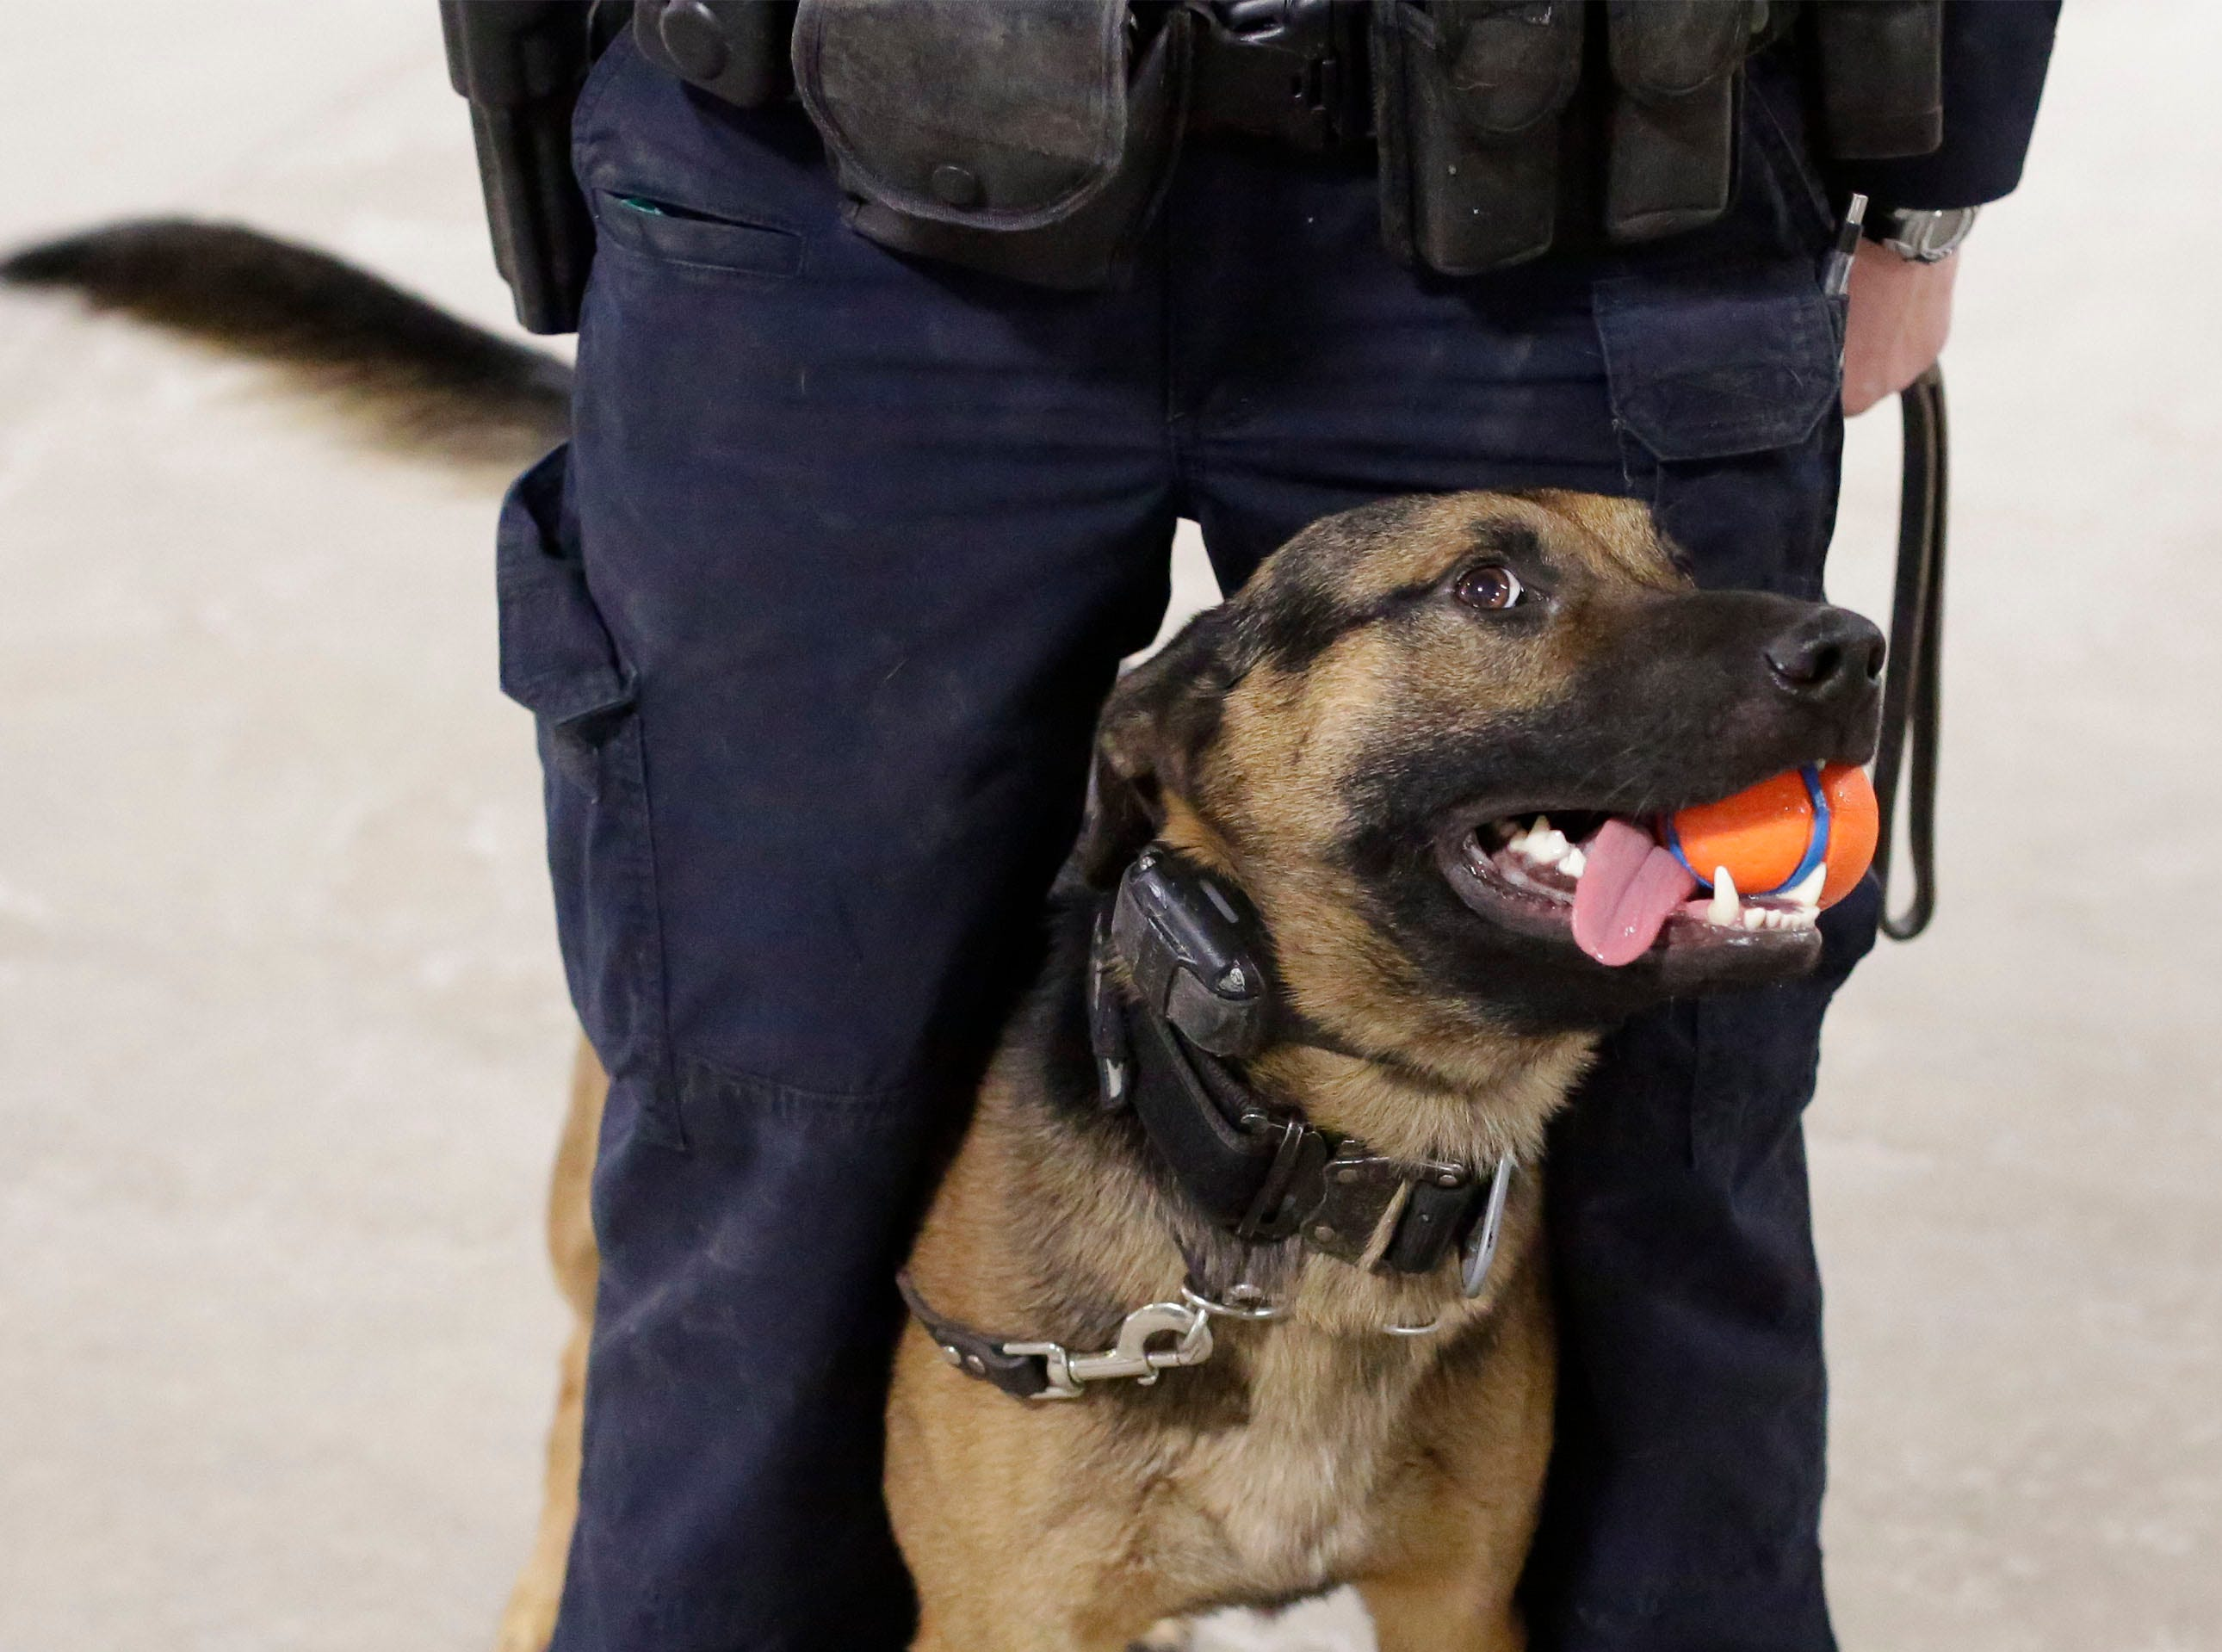 Sheboygan Police dog Max stays close to his human counterpart Officer Anna Taylor, Wednesday, March 6, 2019, in Sheboygan, Wis. According to Taylor, a ball is his reward for doing his job.